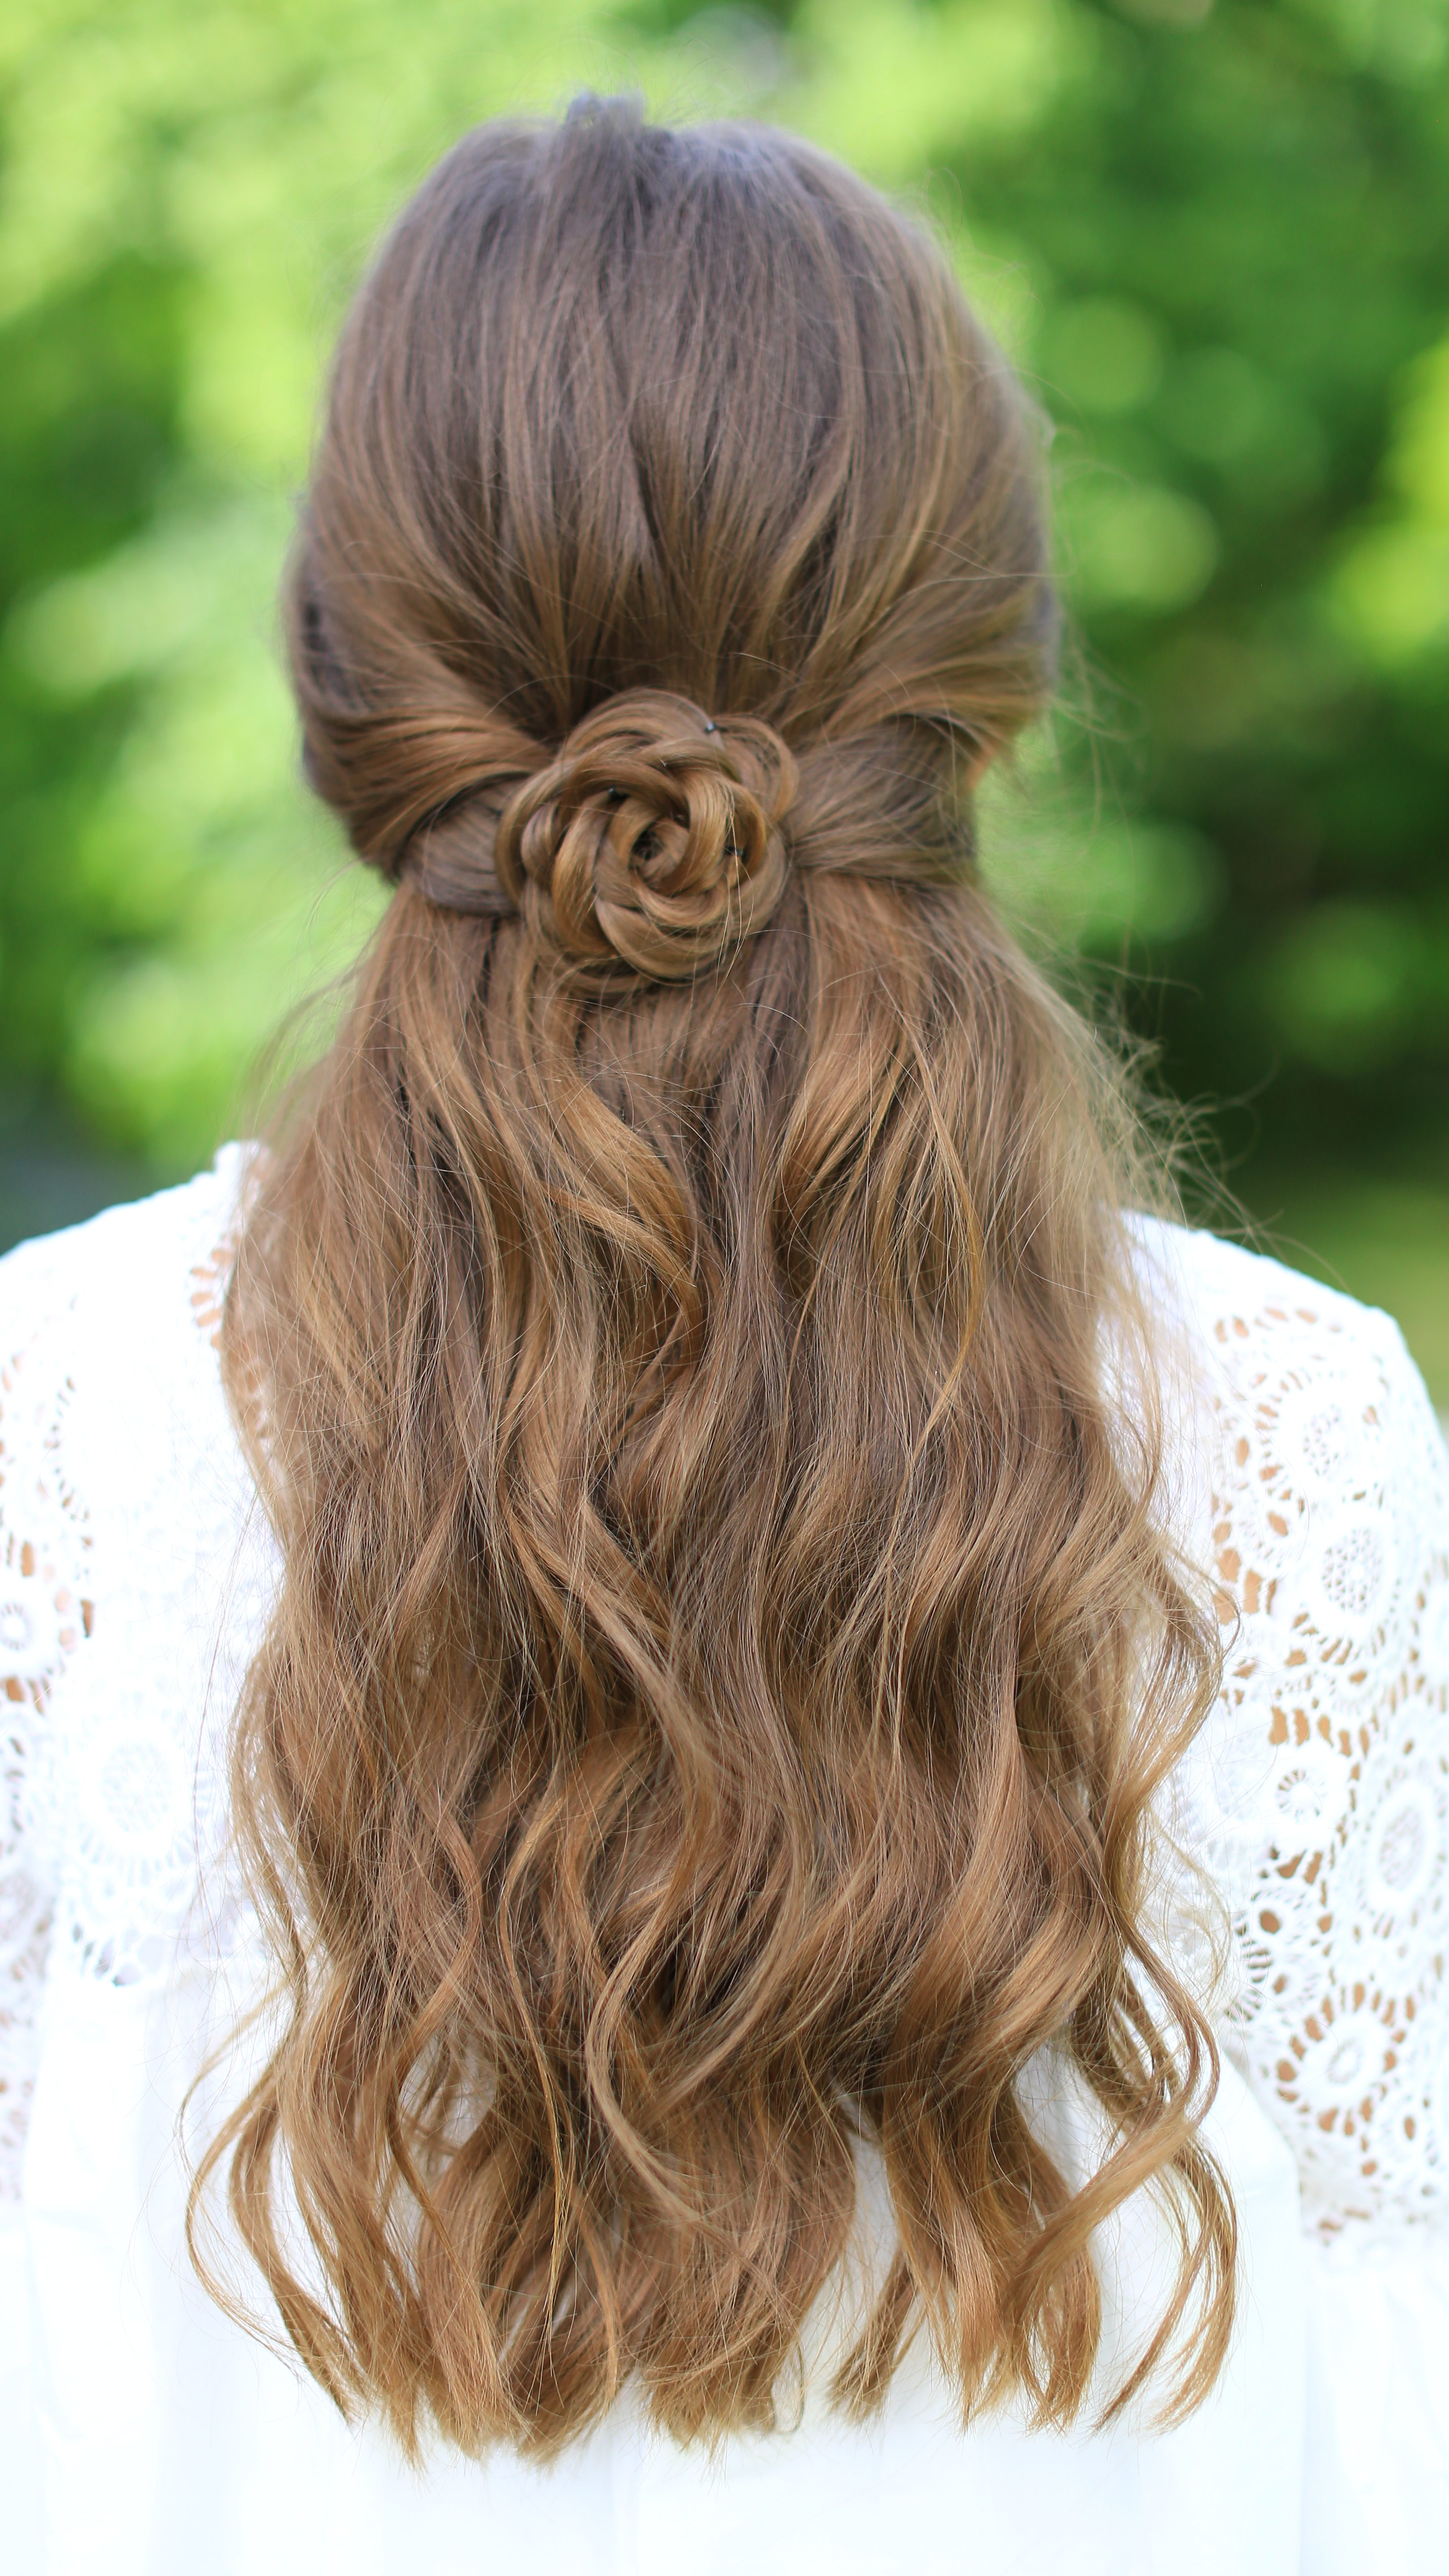 Best ideas about Cute Hairstyles For Women . Save or Pin Rosette Tieback Now.